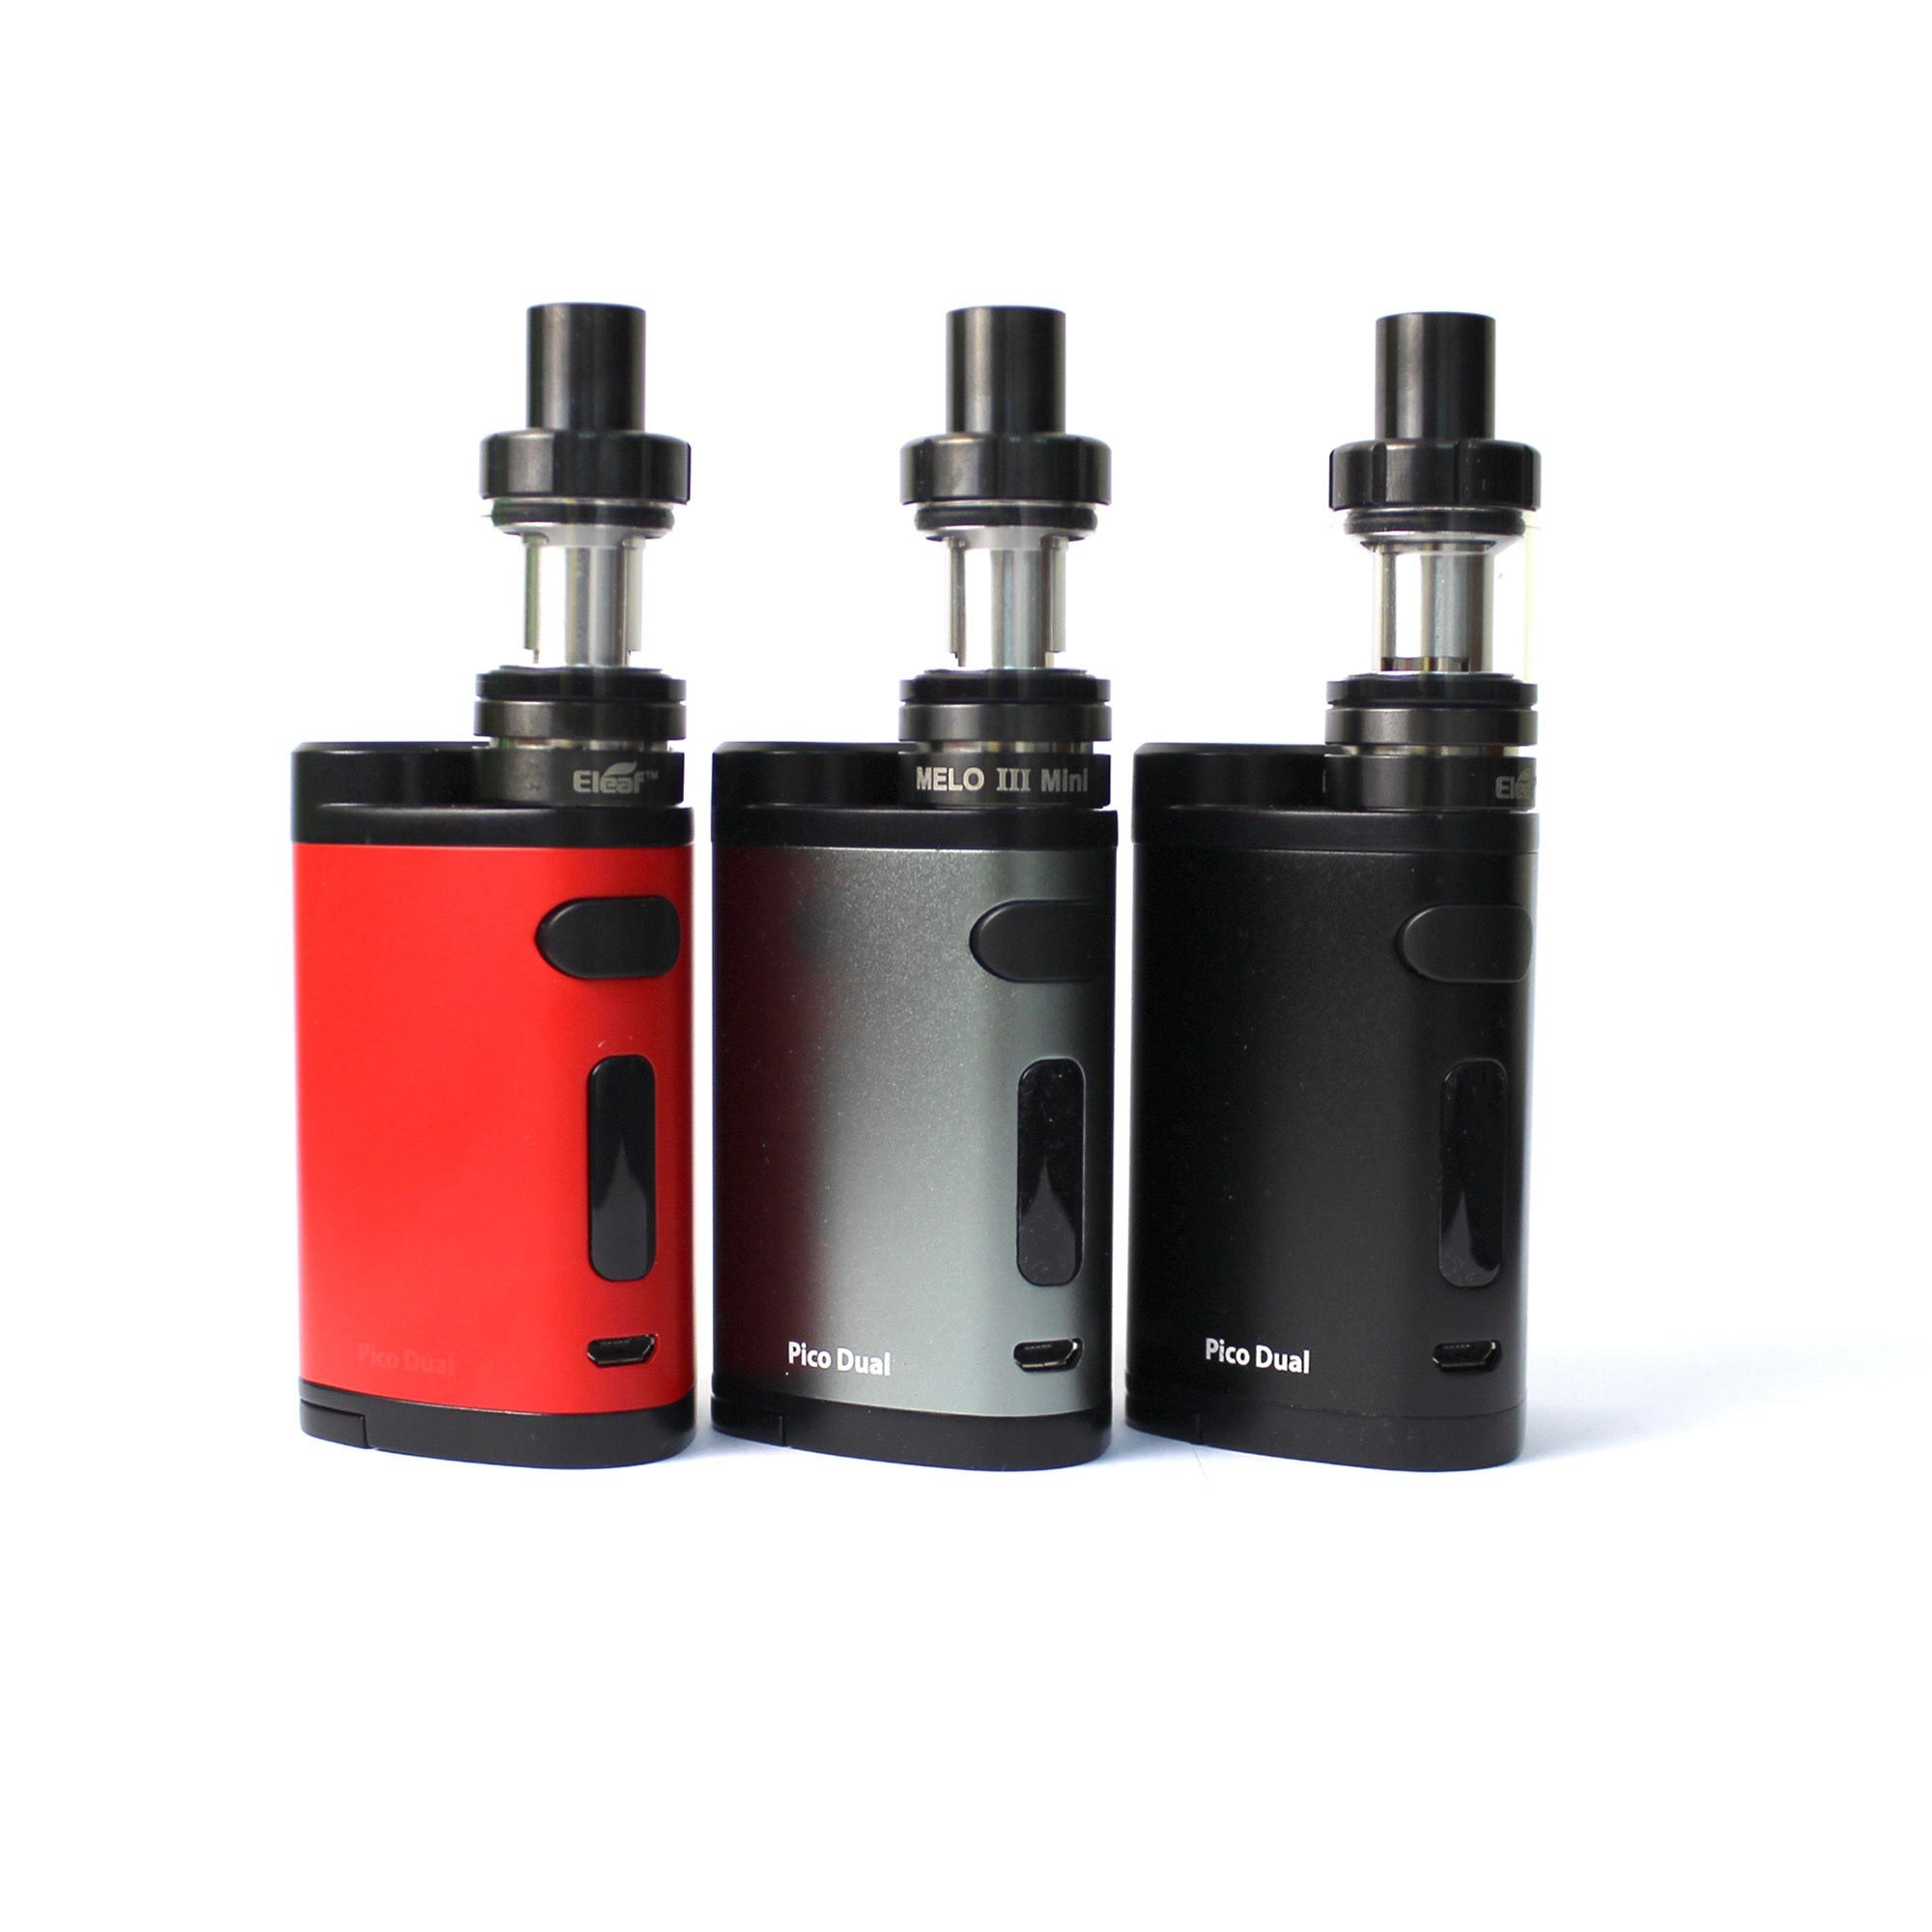 Набор Eleaf Istick Pico Dual kit цвета